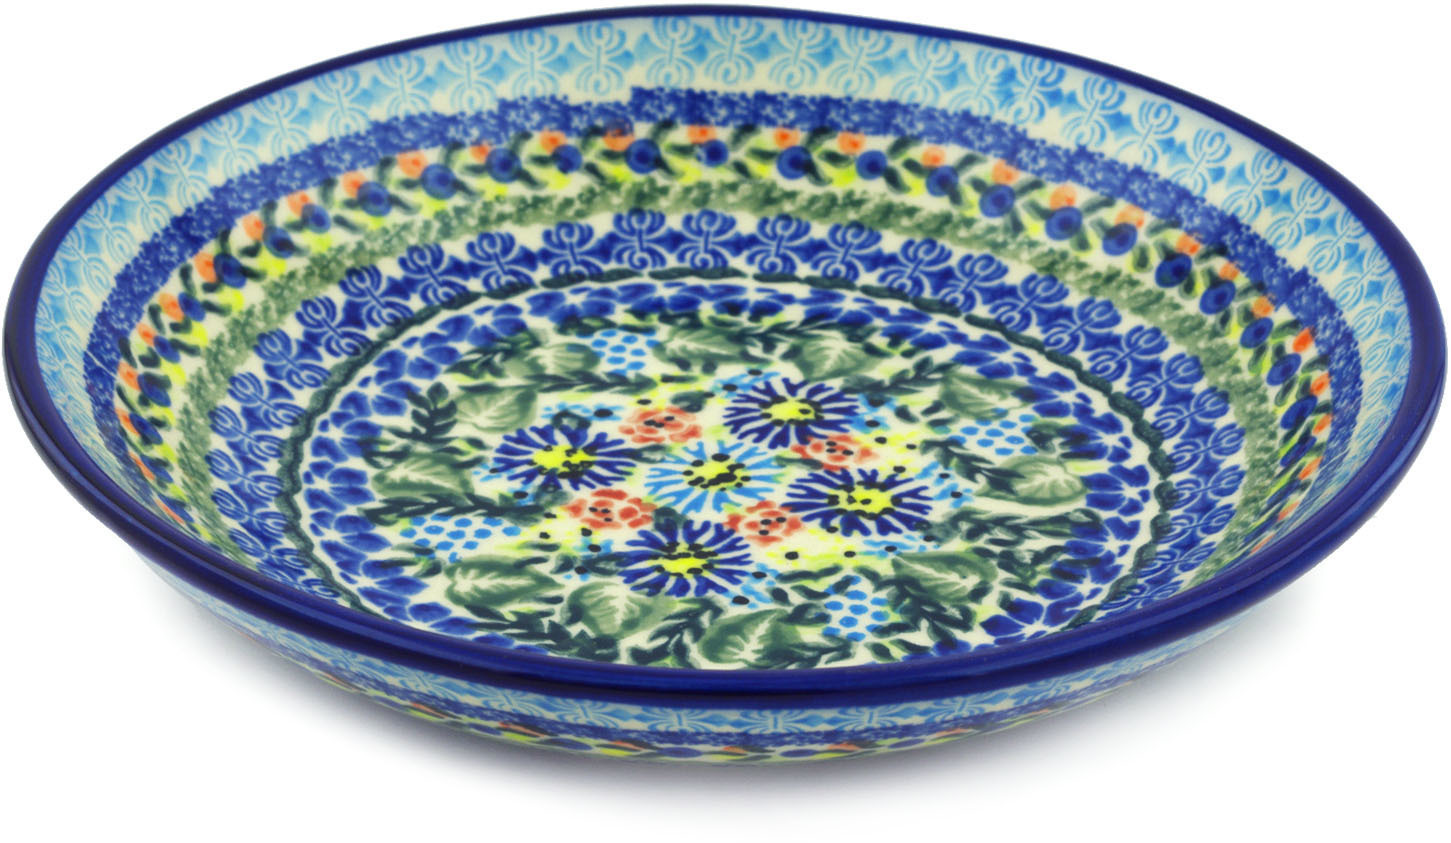 Polish Pottery 8�-inch Pasta Bowl (Flor-de-lis Theme) Hand Painted in Boleslawiec, Poland + Certificate of... by Ceramika Bona